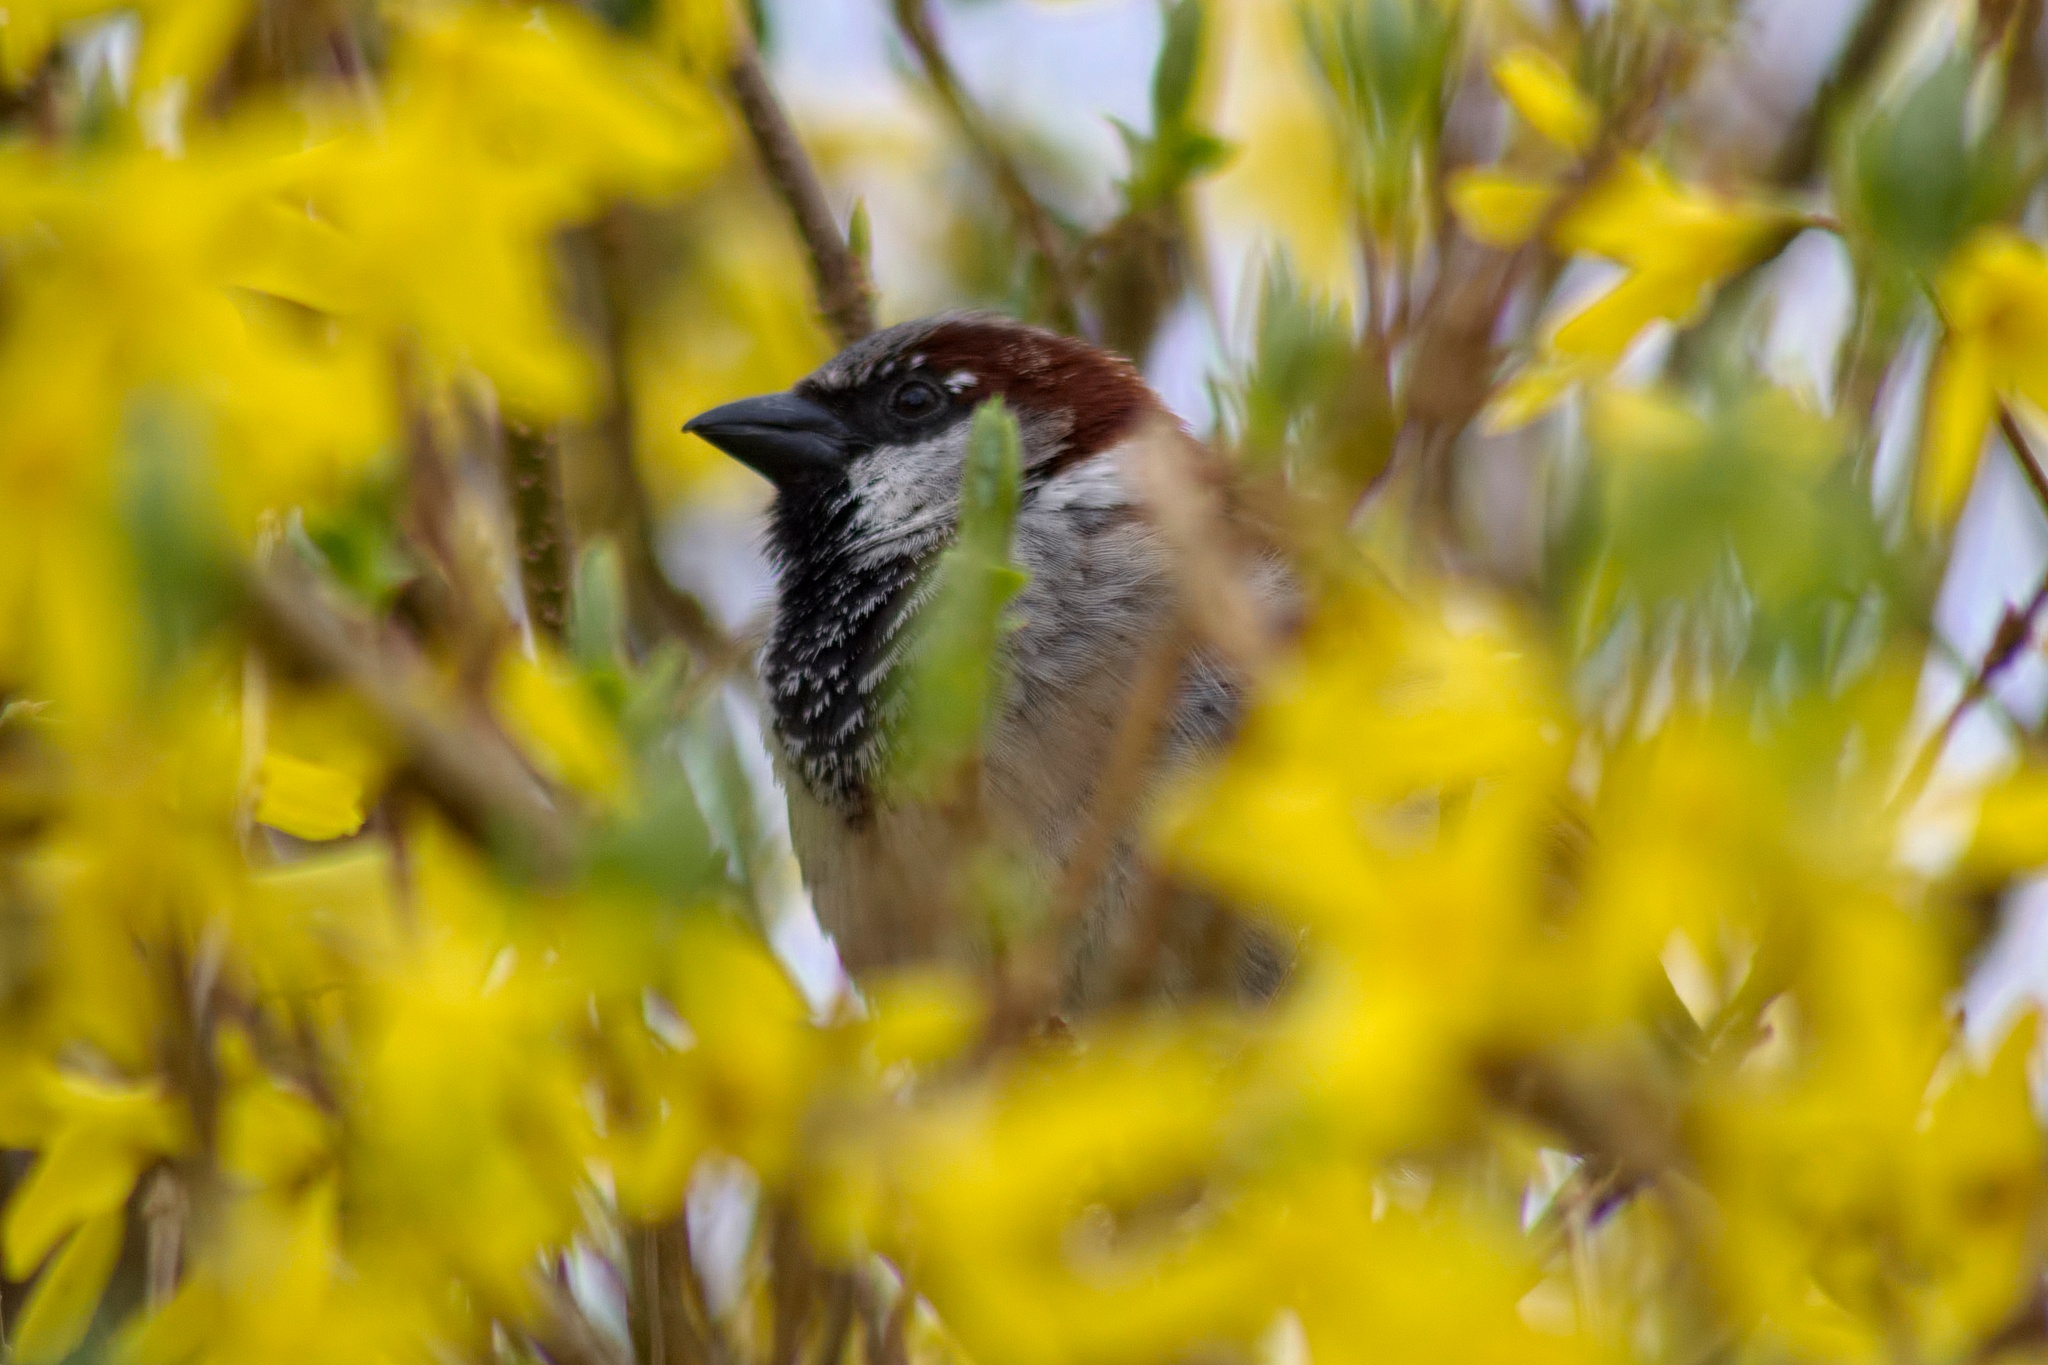 House sparrow in forsythia by Starsphinx